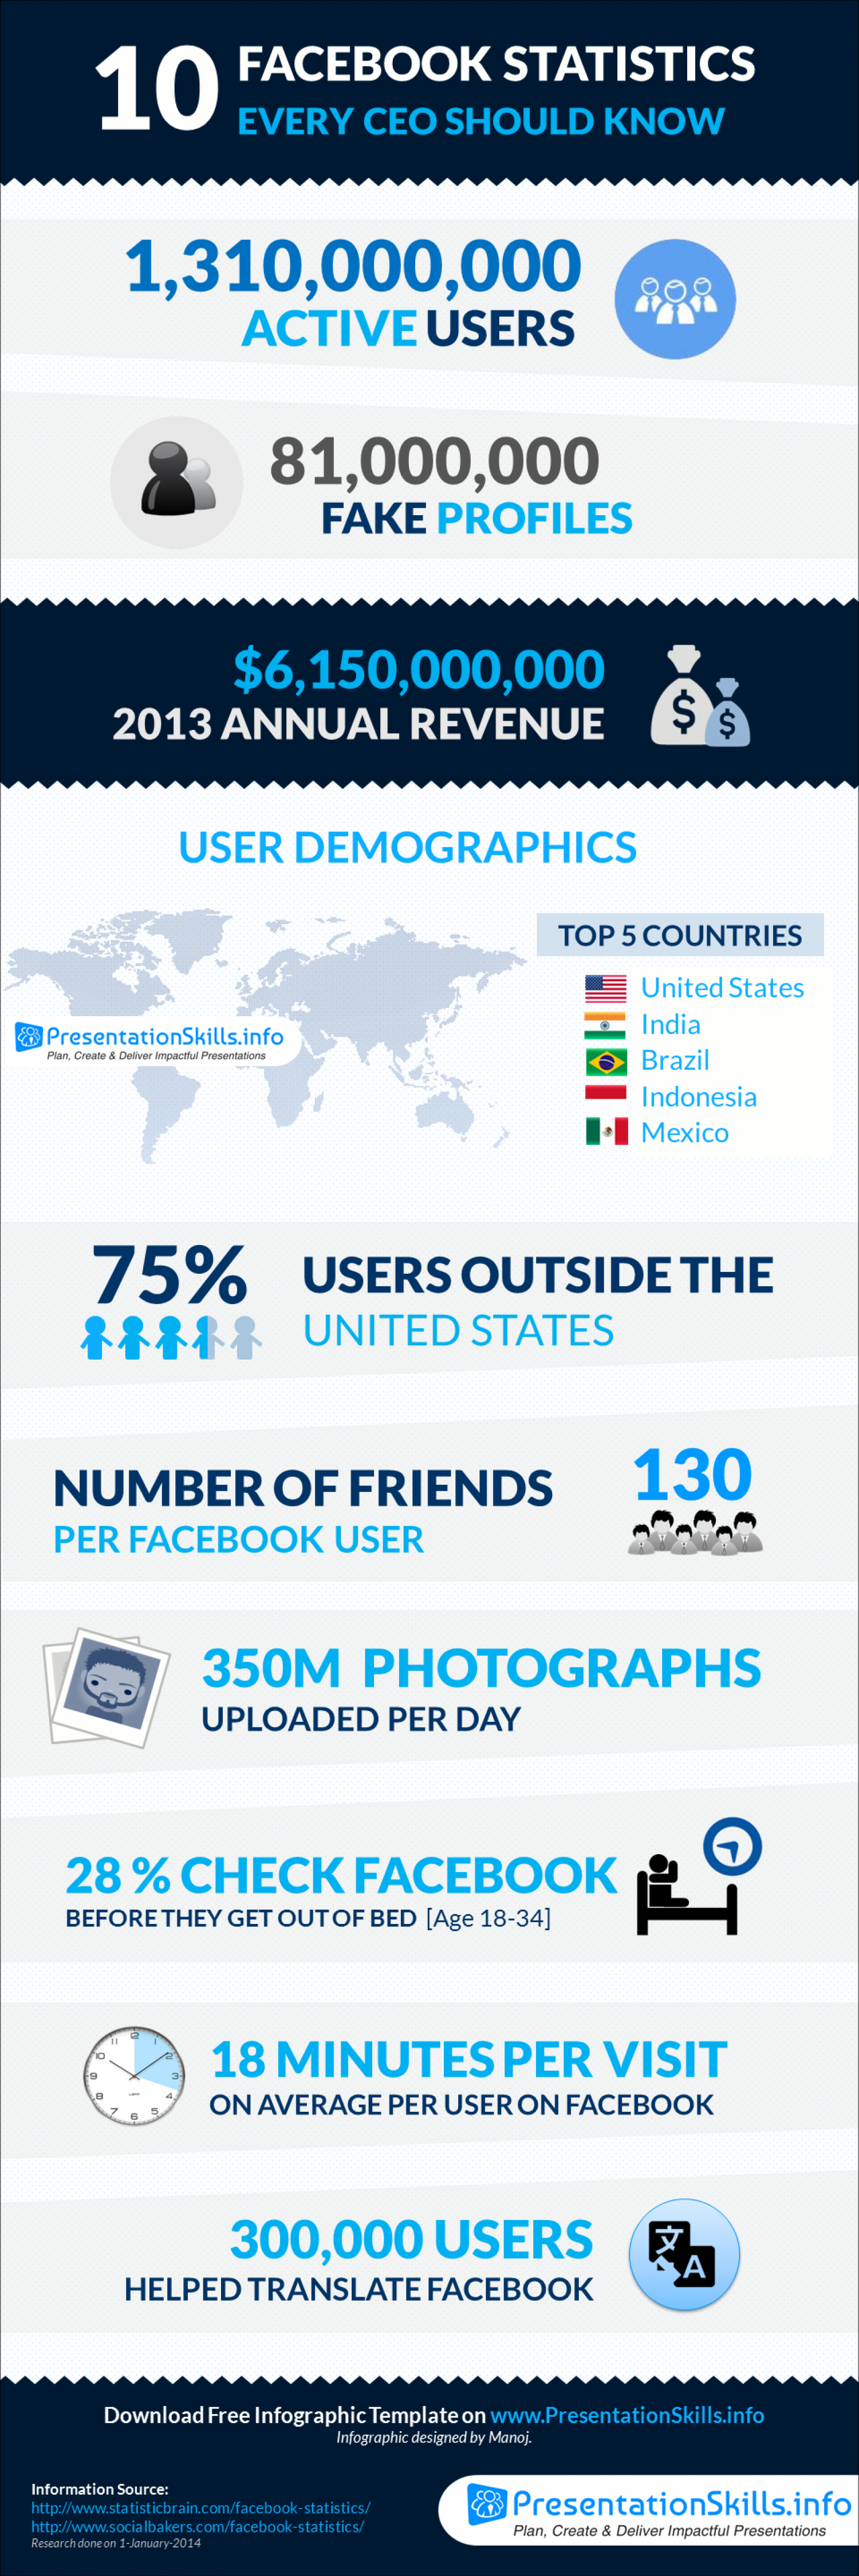 10 Facebook Statistics Every CEO Should Know Infographic